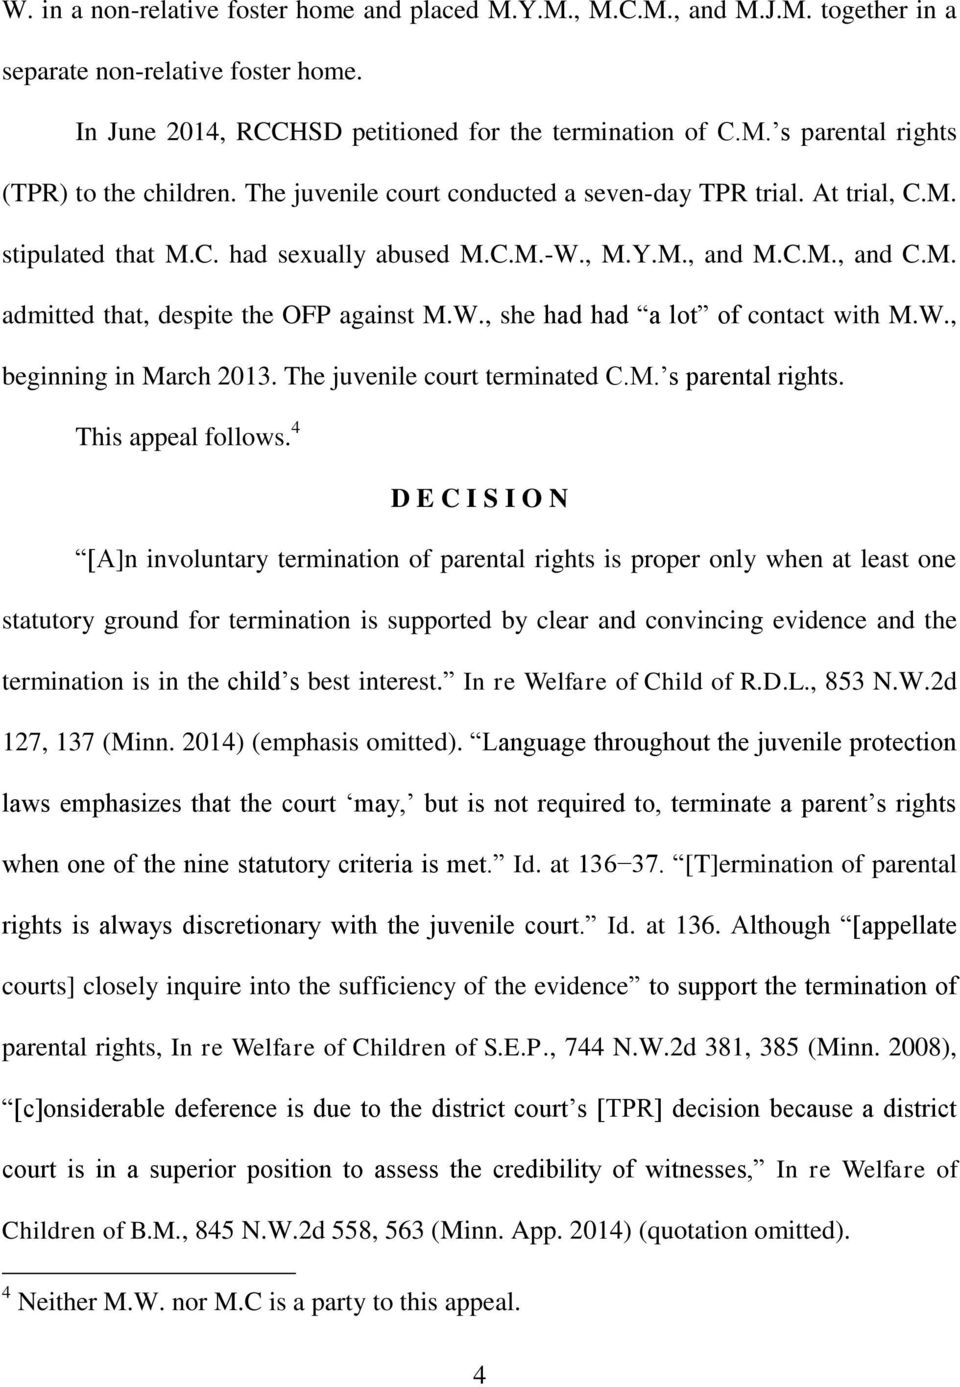 W., beginning in March 2013. The juvenile court terminated C.M. s parental rights. This appeal follows.